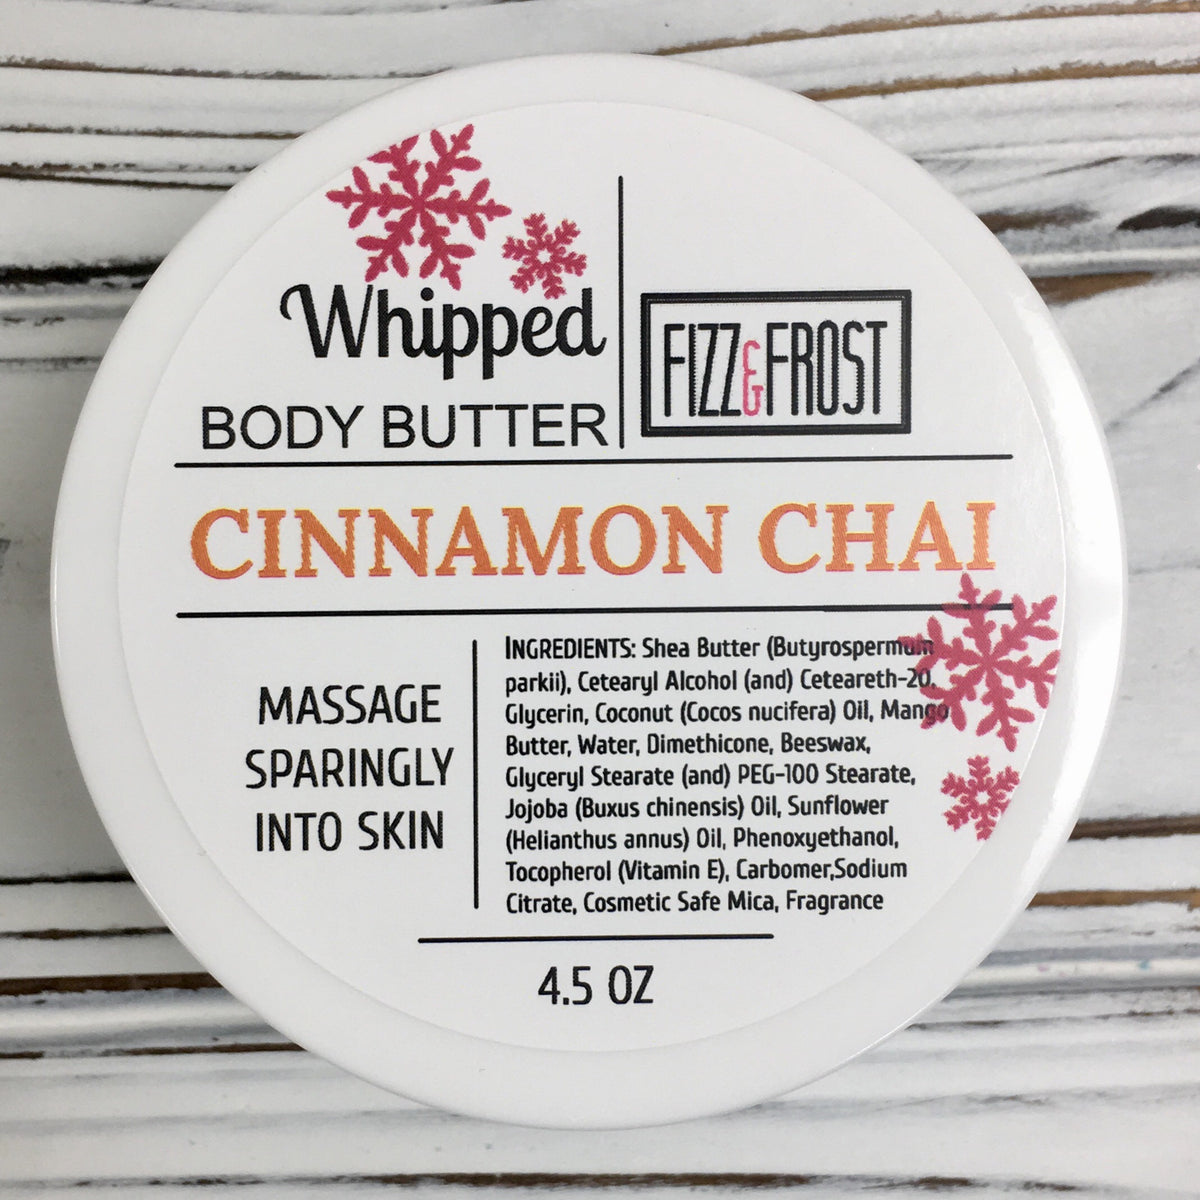 Cinnamon Chai - Whipped Body Butter